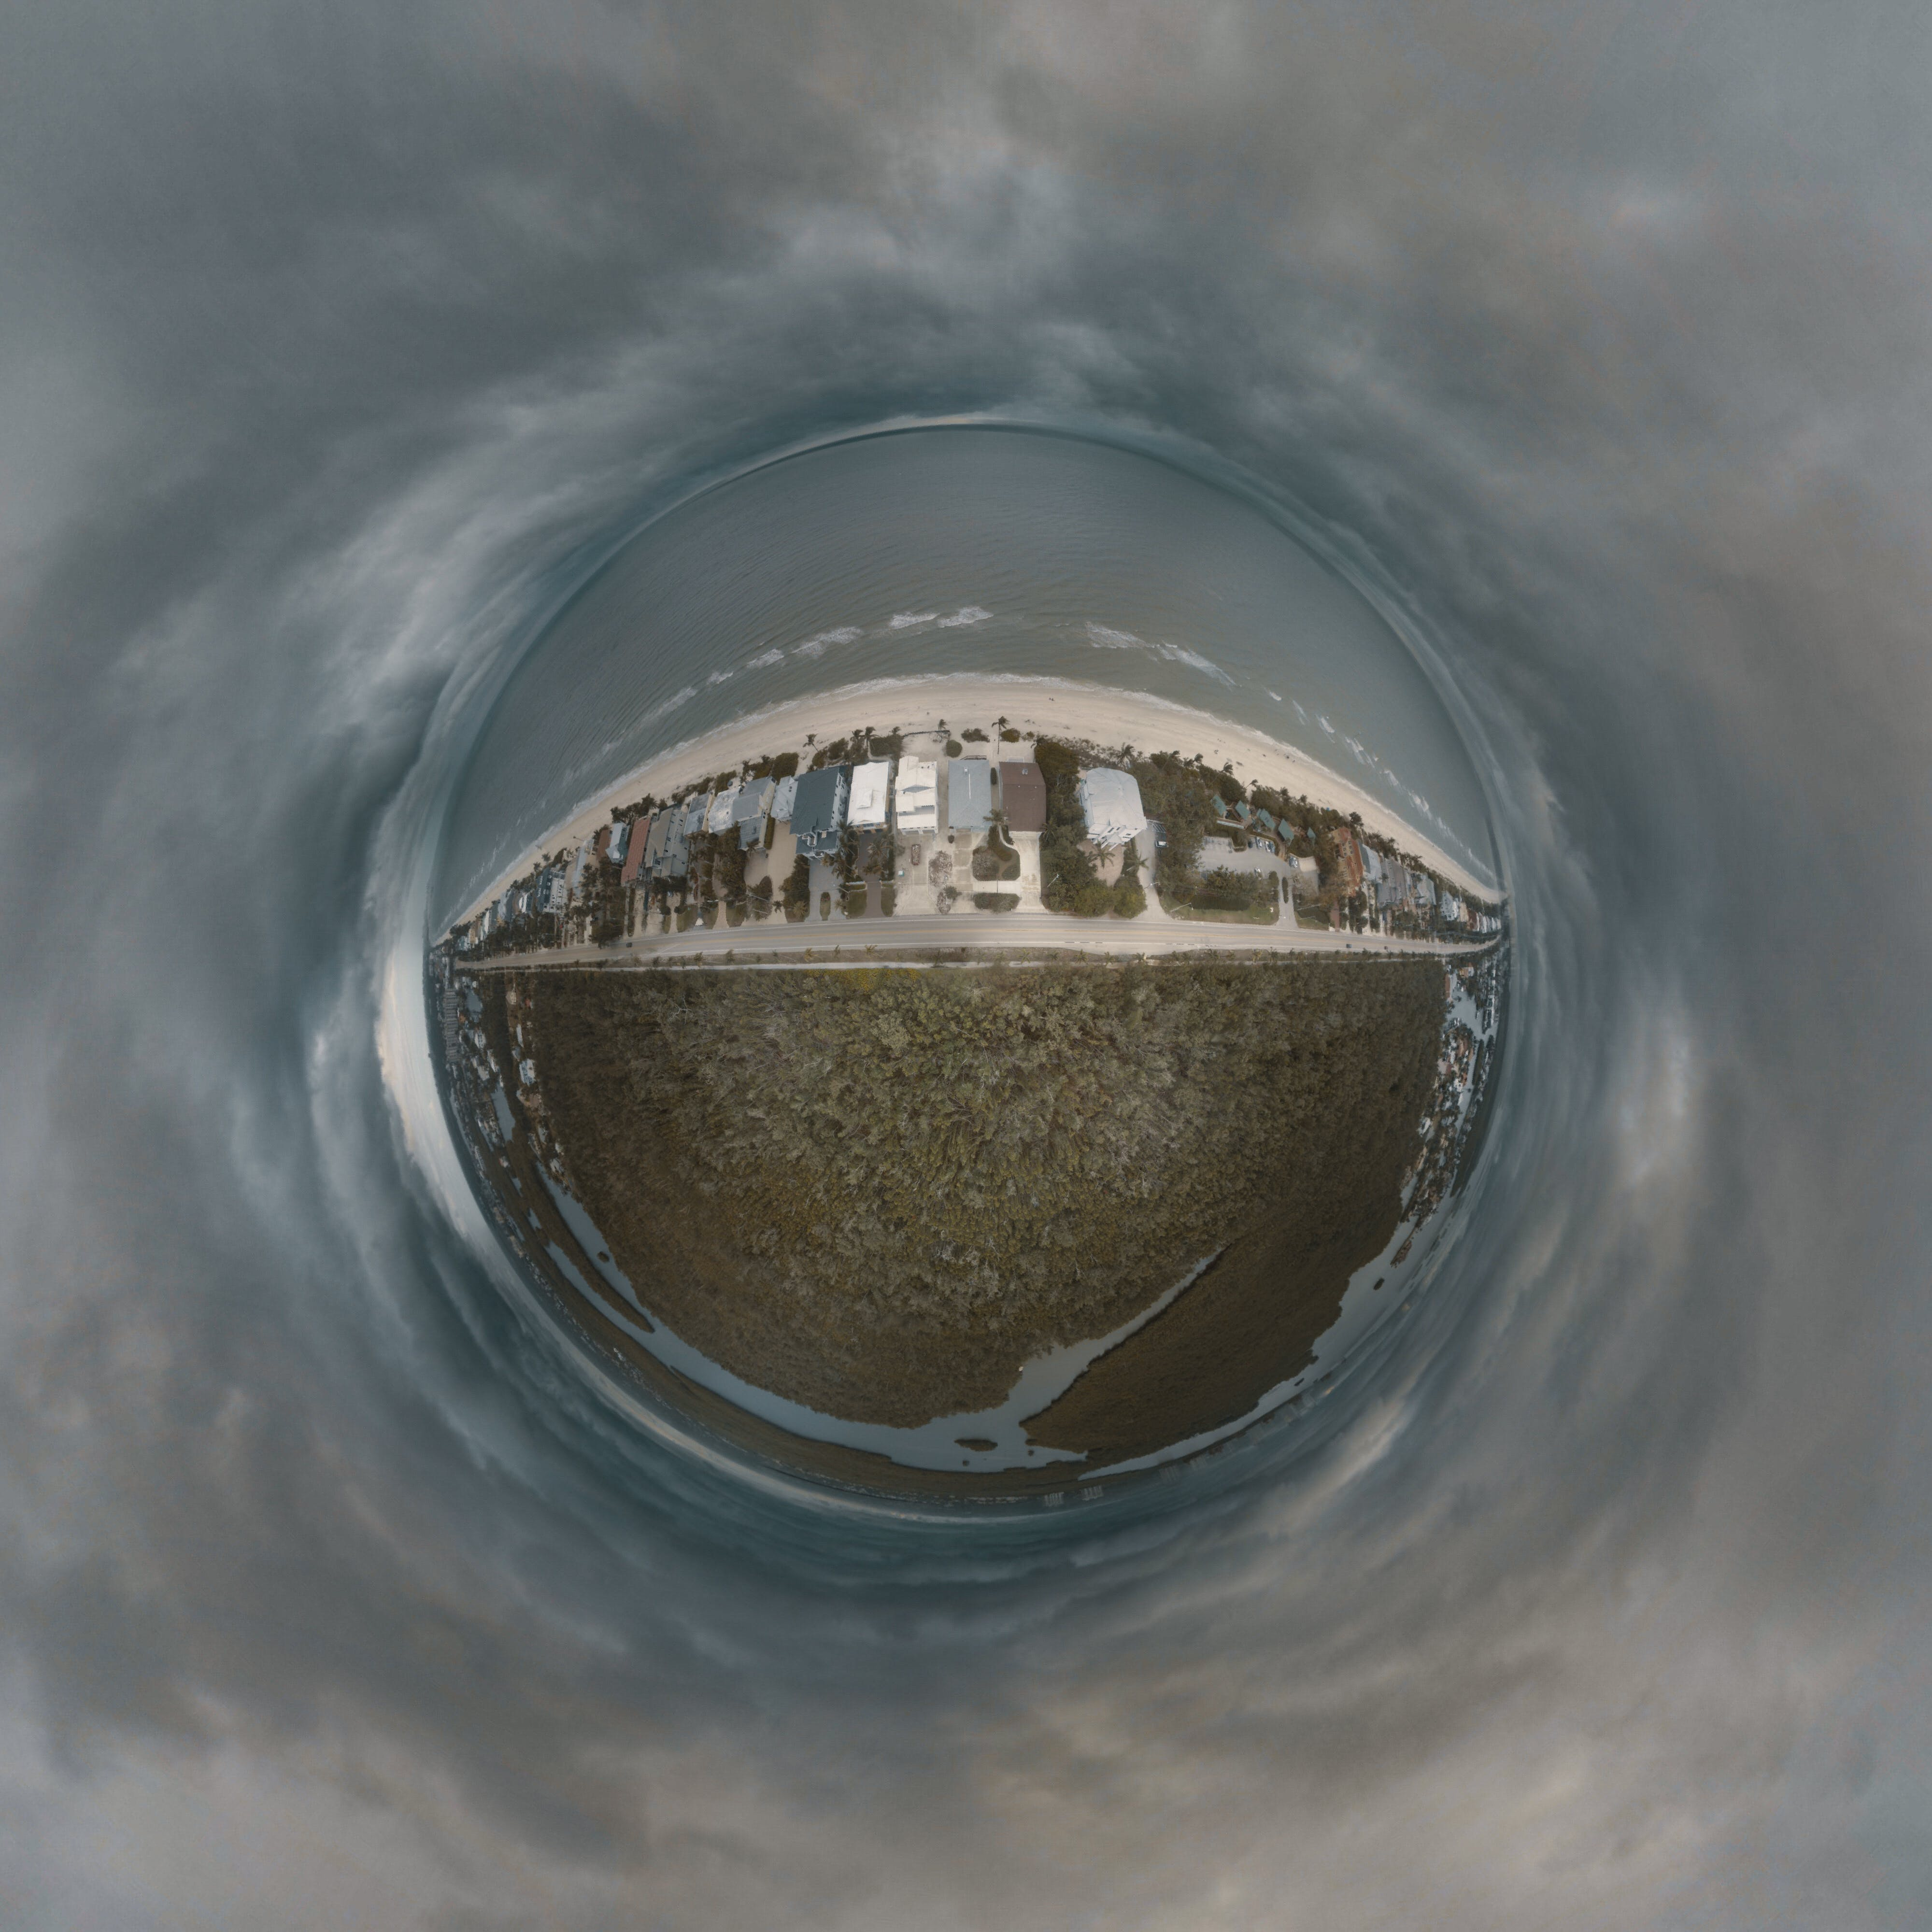 Fish Eye Lens of Body of Water